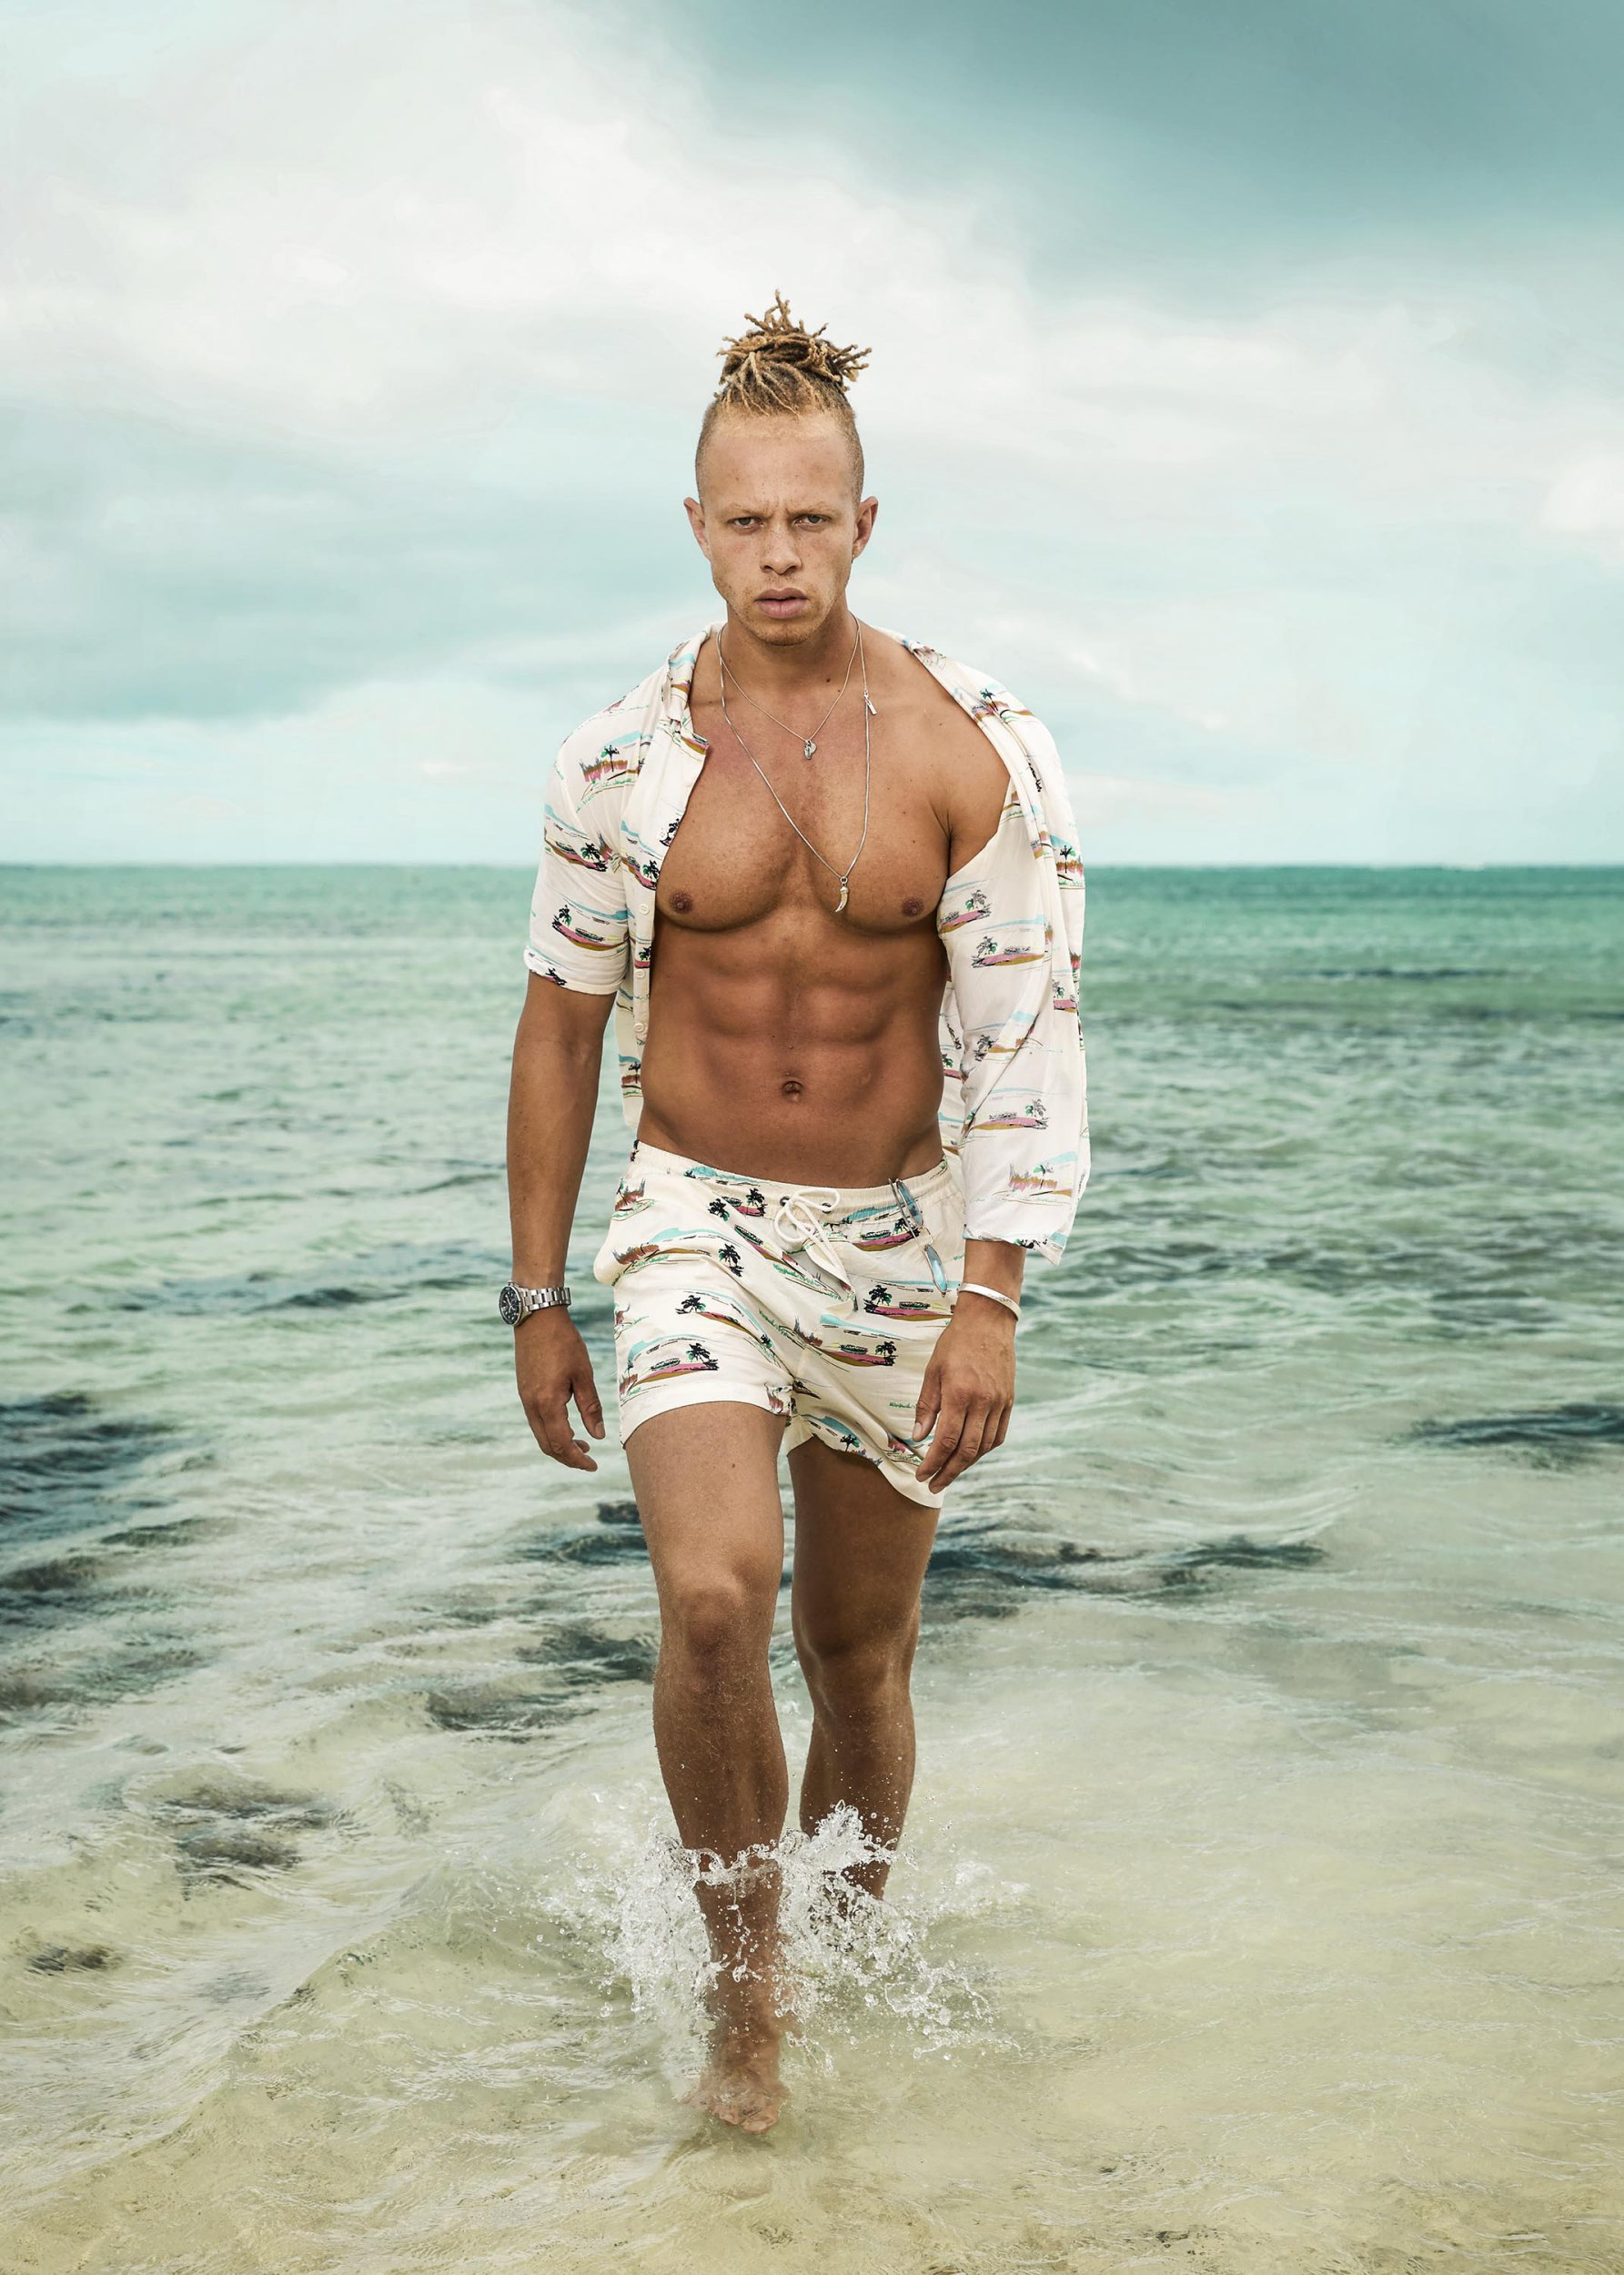 Meet Chris, the Shipwrecked castaway who wants to be the island's mediator